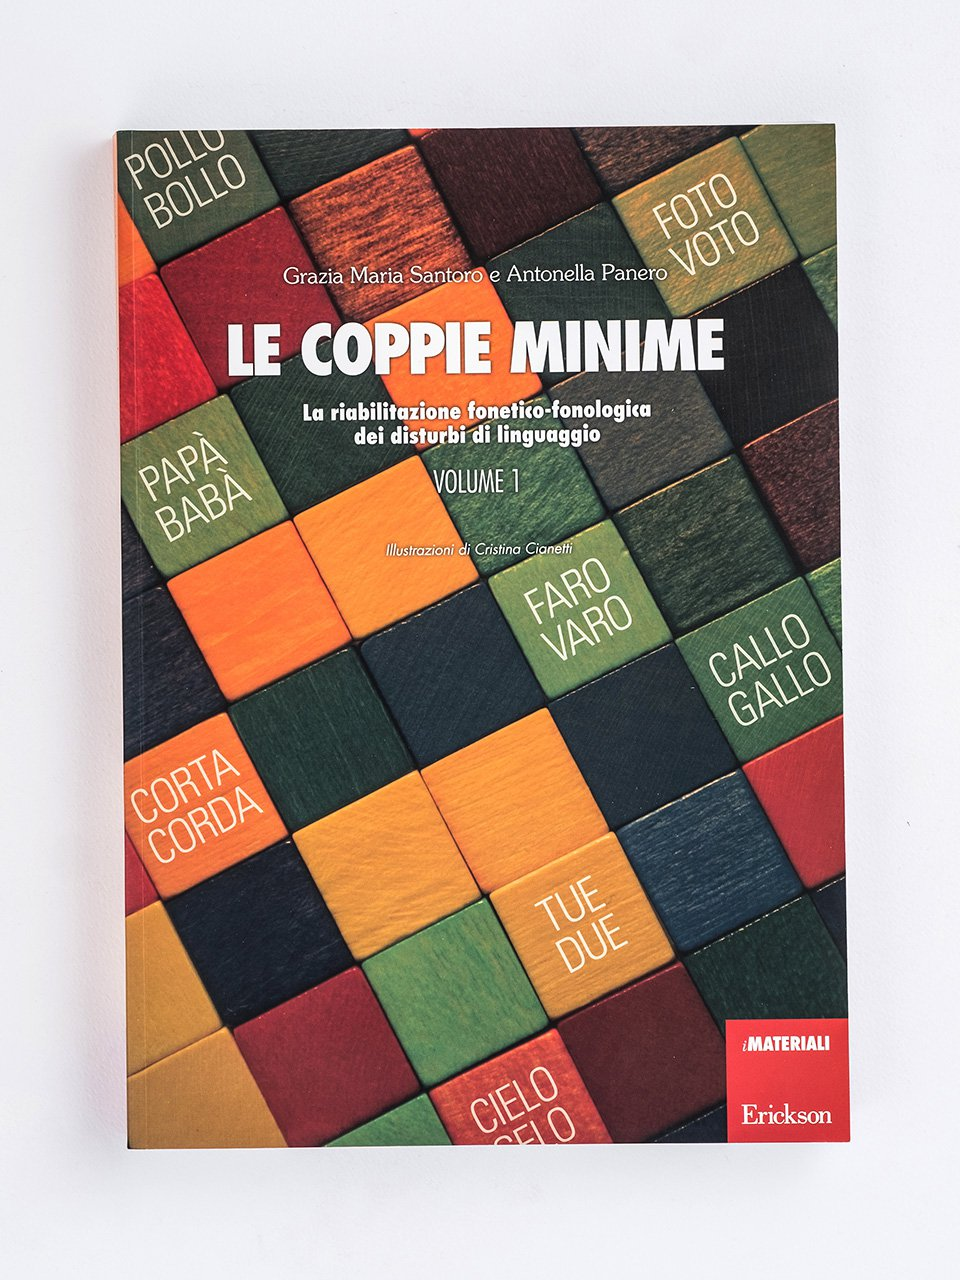 Le coppie minime - Volume 1 - Le coppie minime - Volume 2 - Libri - App e software - Erickson